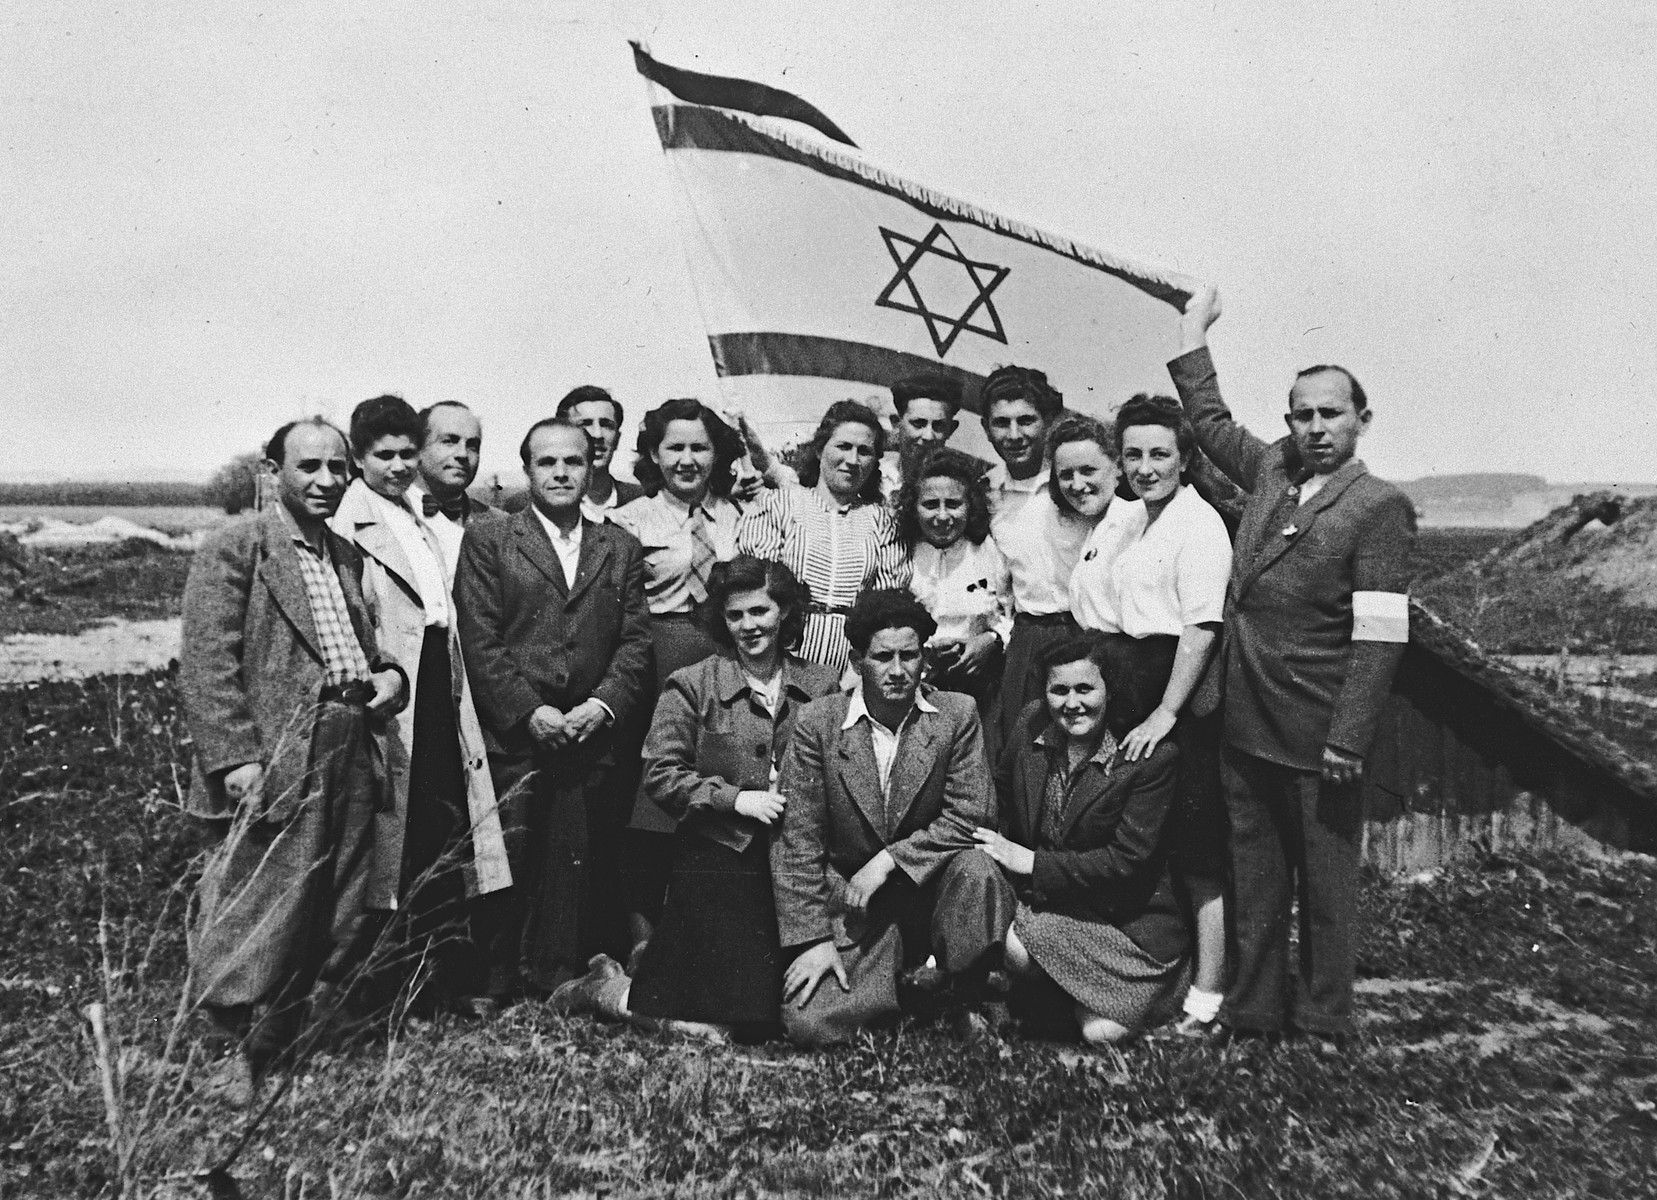 Jewish displaced persons n the Landsberg camp gather for a group portrait underneath a large Israeli flag.  Among those pictured are Max Freidberg (third from left) and Rachel Freidberg (sixth from left in a white blouse and tie).